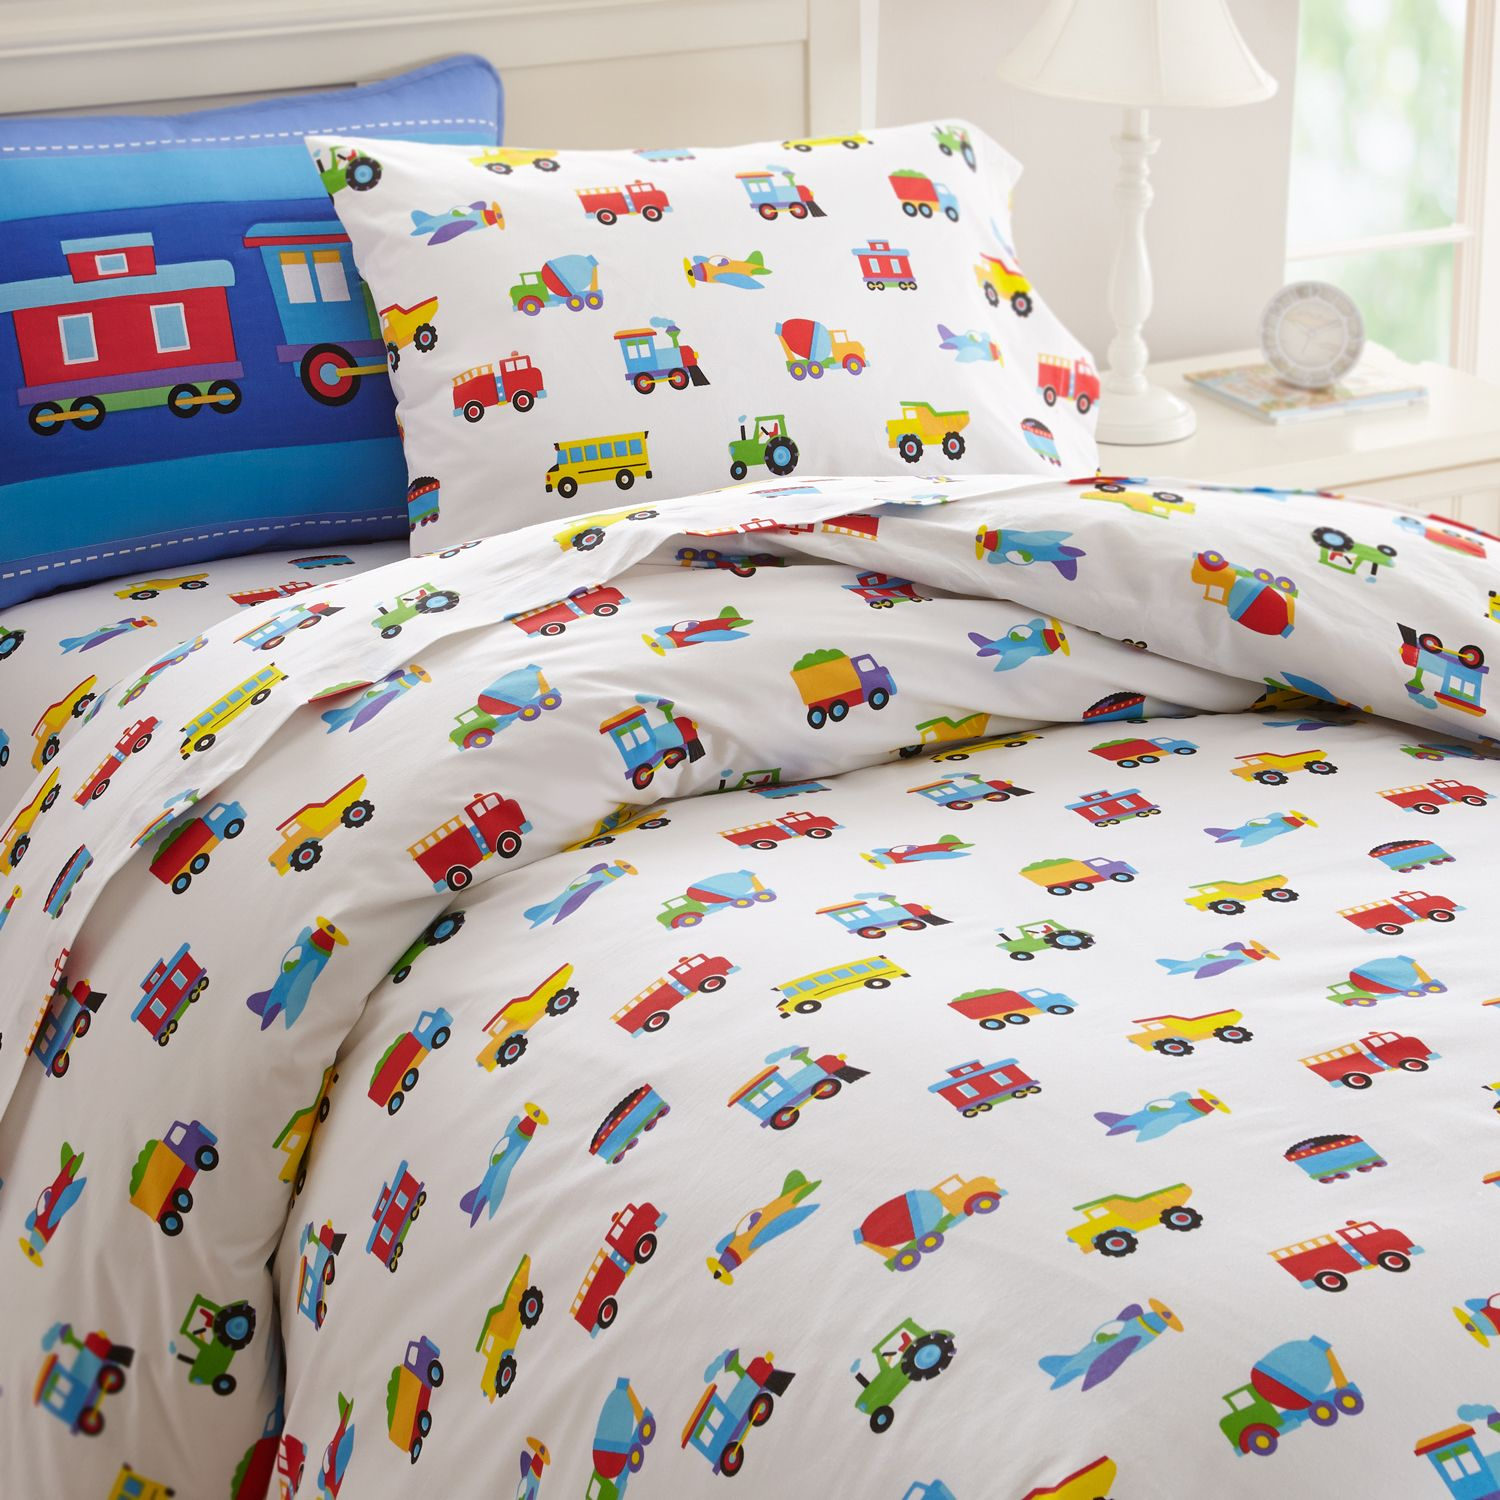 Trucks Airplanes Trains Duvet Cover Twin Or Full Transportation By Olive Kids Single Double Bettdeckenbezug Jungen Bettwäsche Bettwäsche Kinder